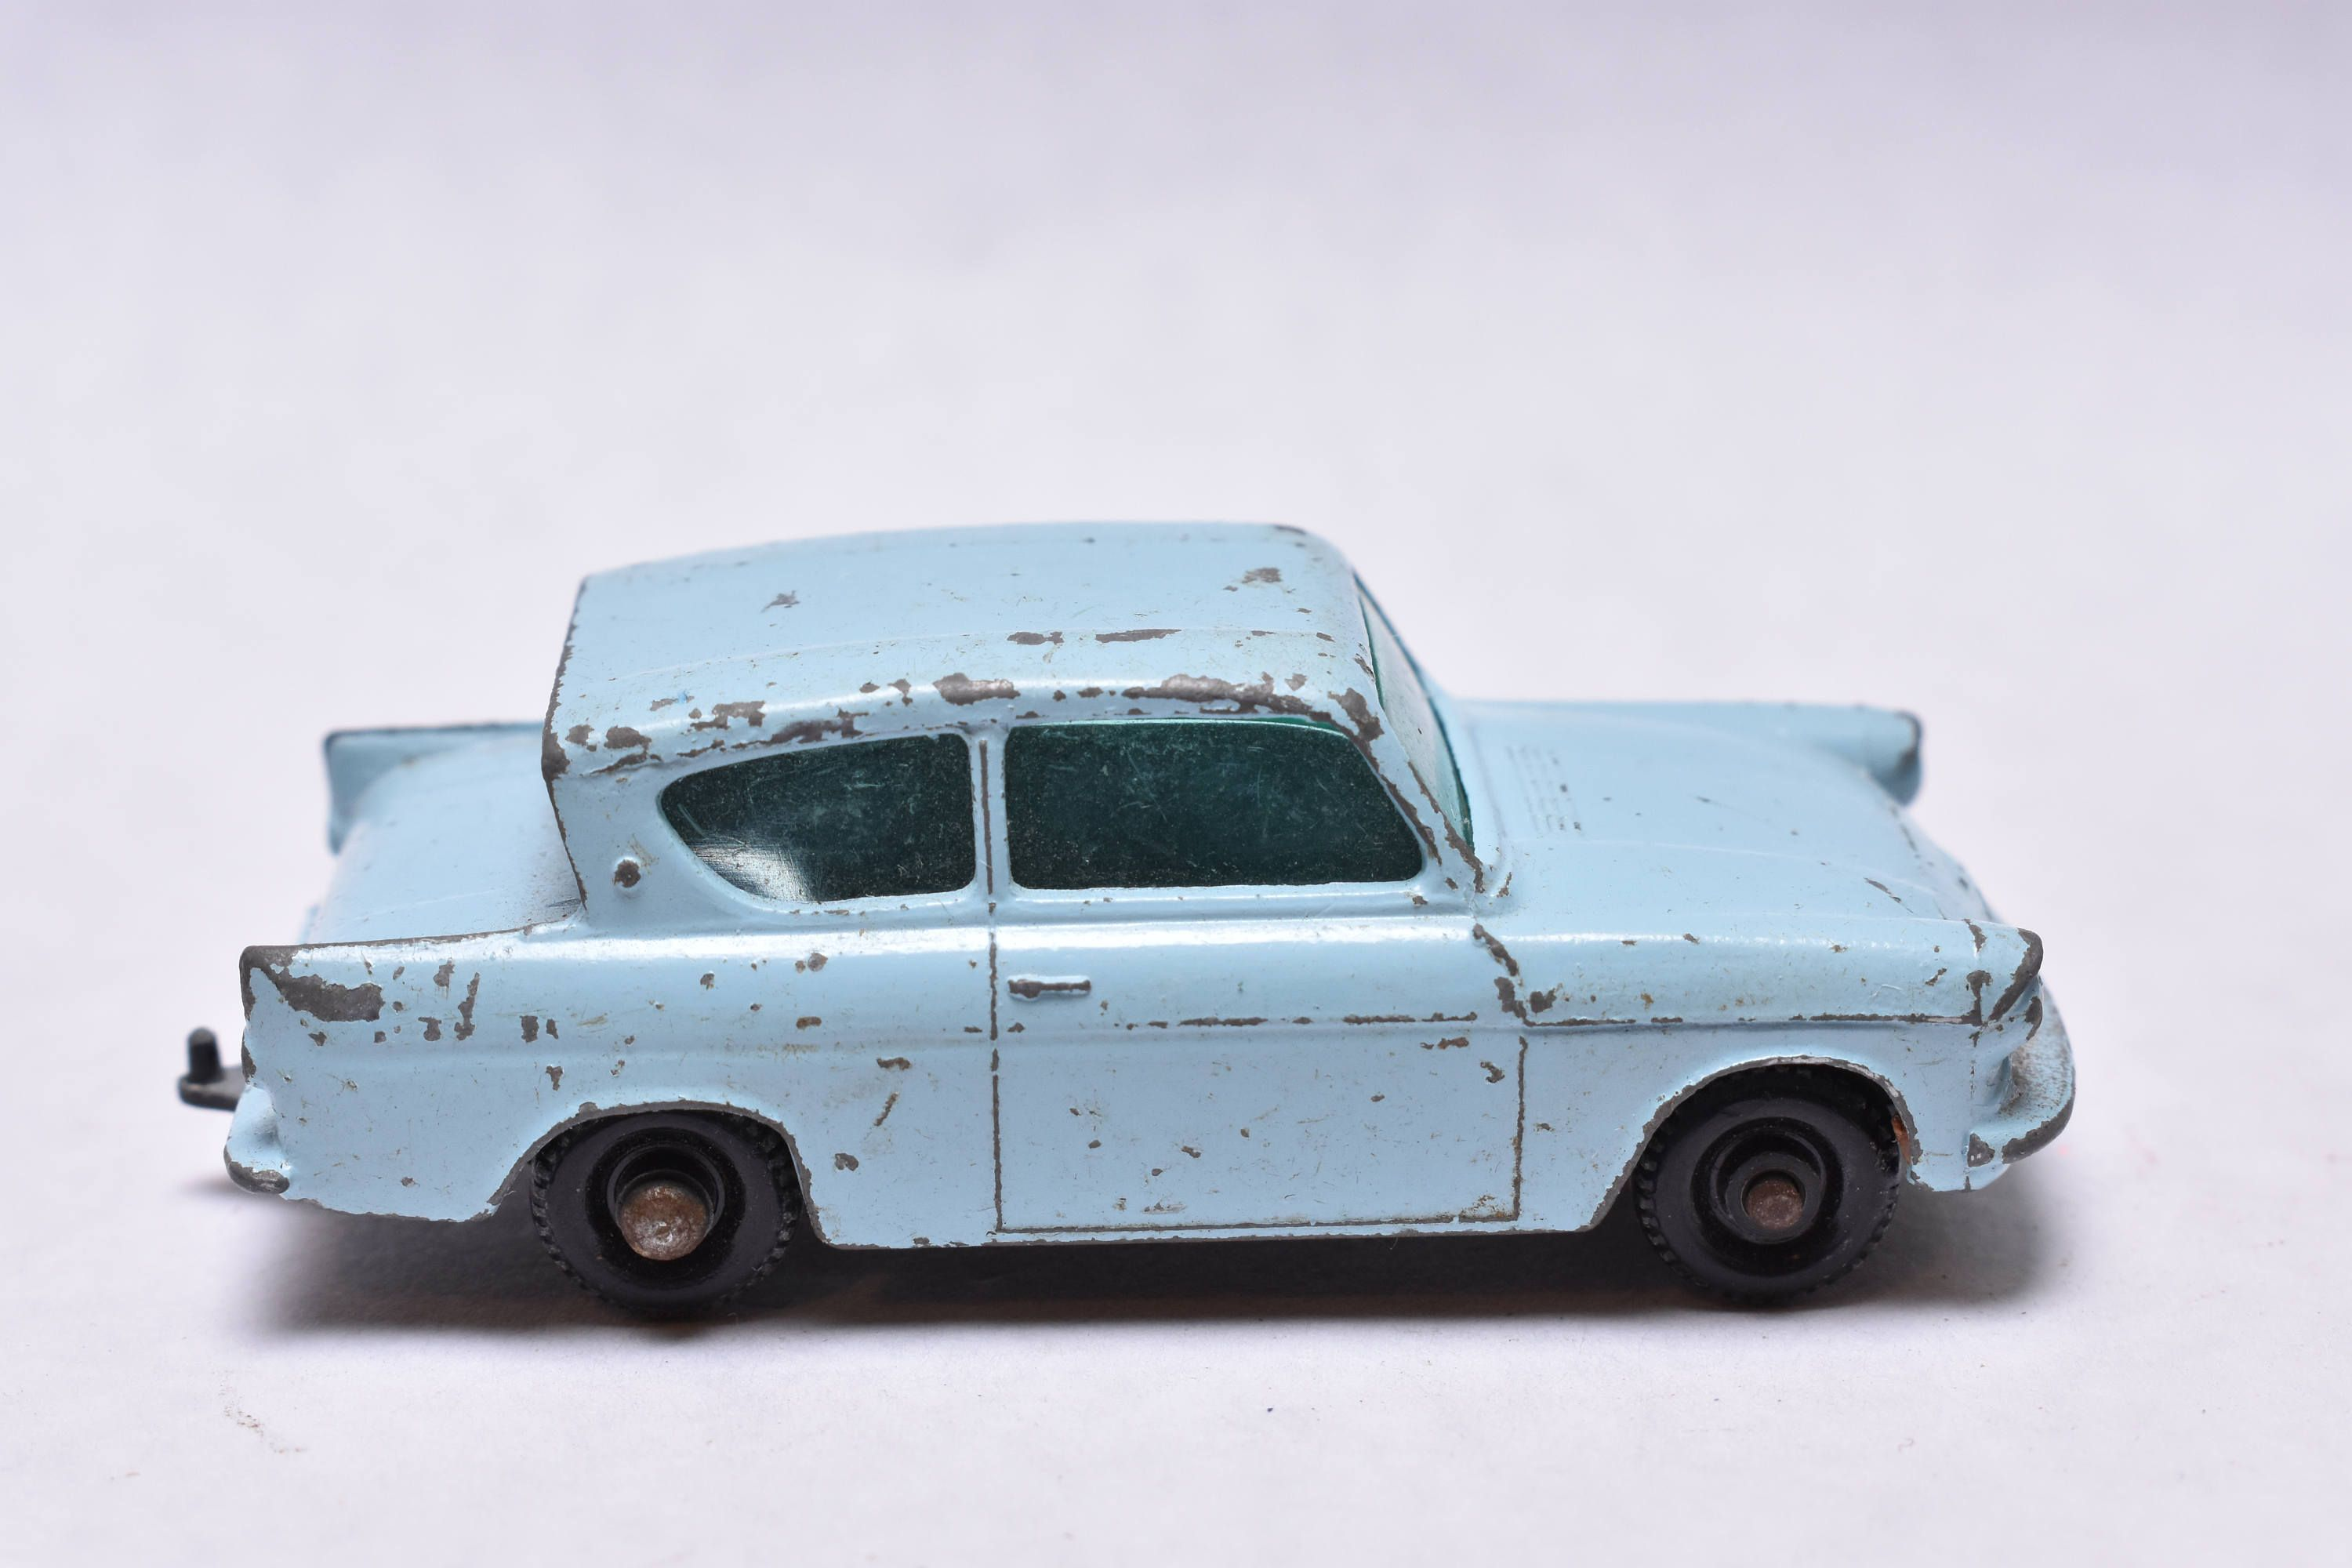 Matchbox Lesney No 7 Ford Anglia Light Blue 2 Door Sedan 1960 S Made In England Original Vintage Die Cast Toy Car Collection Matchbox Cars Toy Car Matchbox